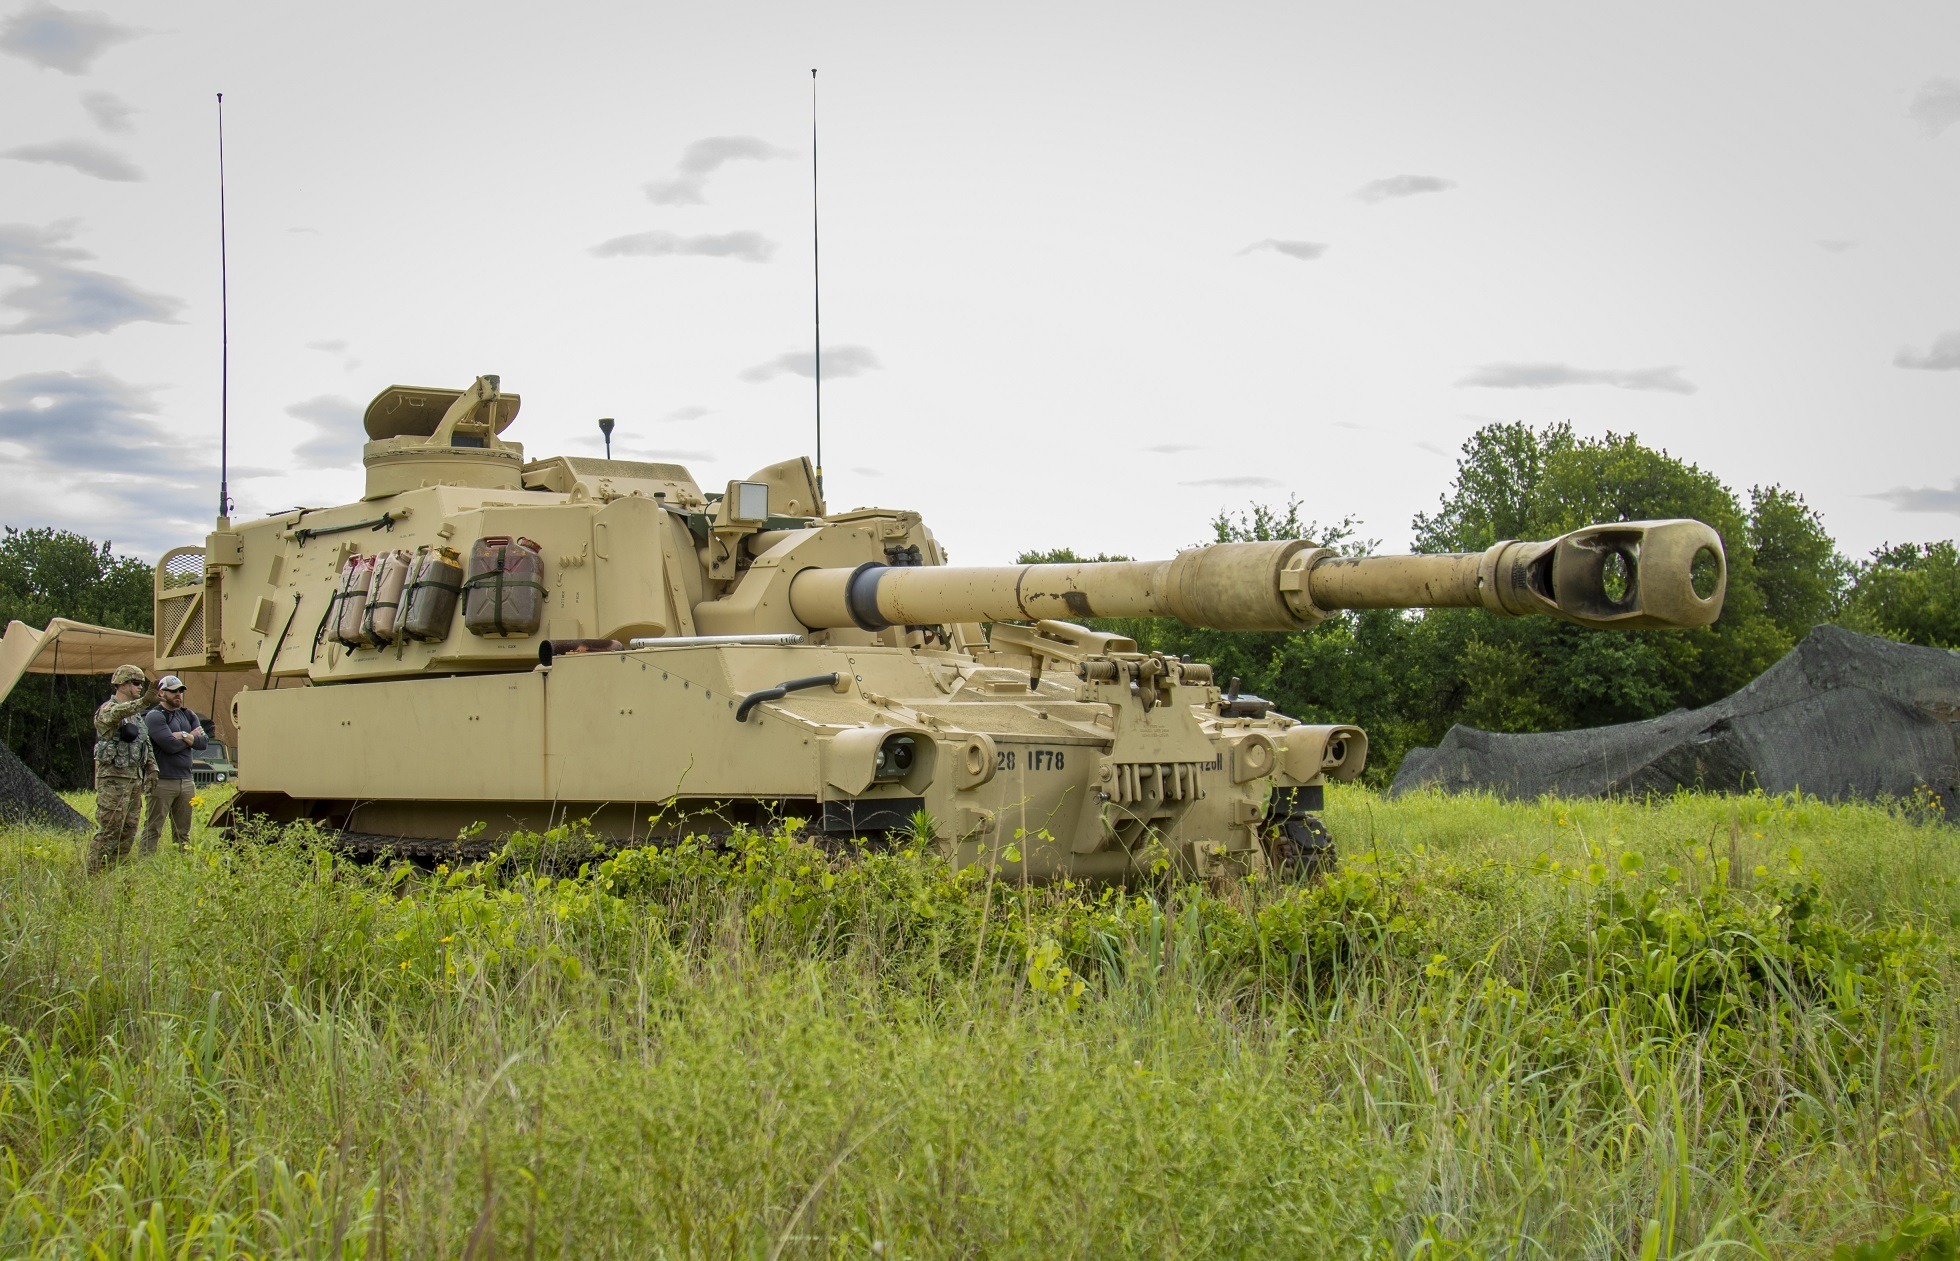 US Army Selects Eckhart to Improve M109 Self-Propelled Howitzer Loading Automation